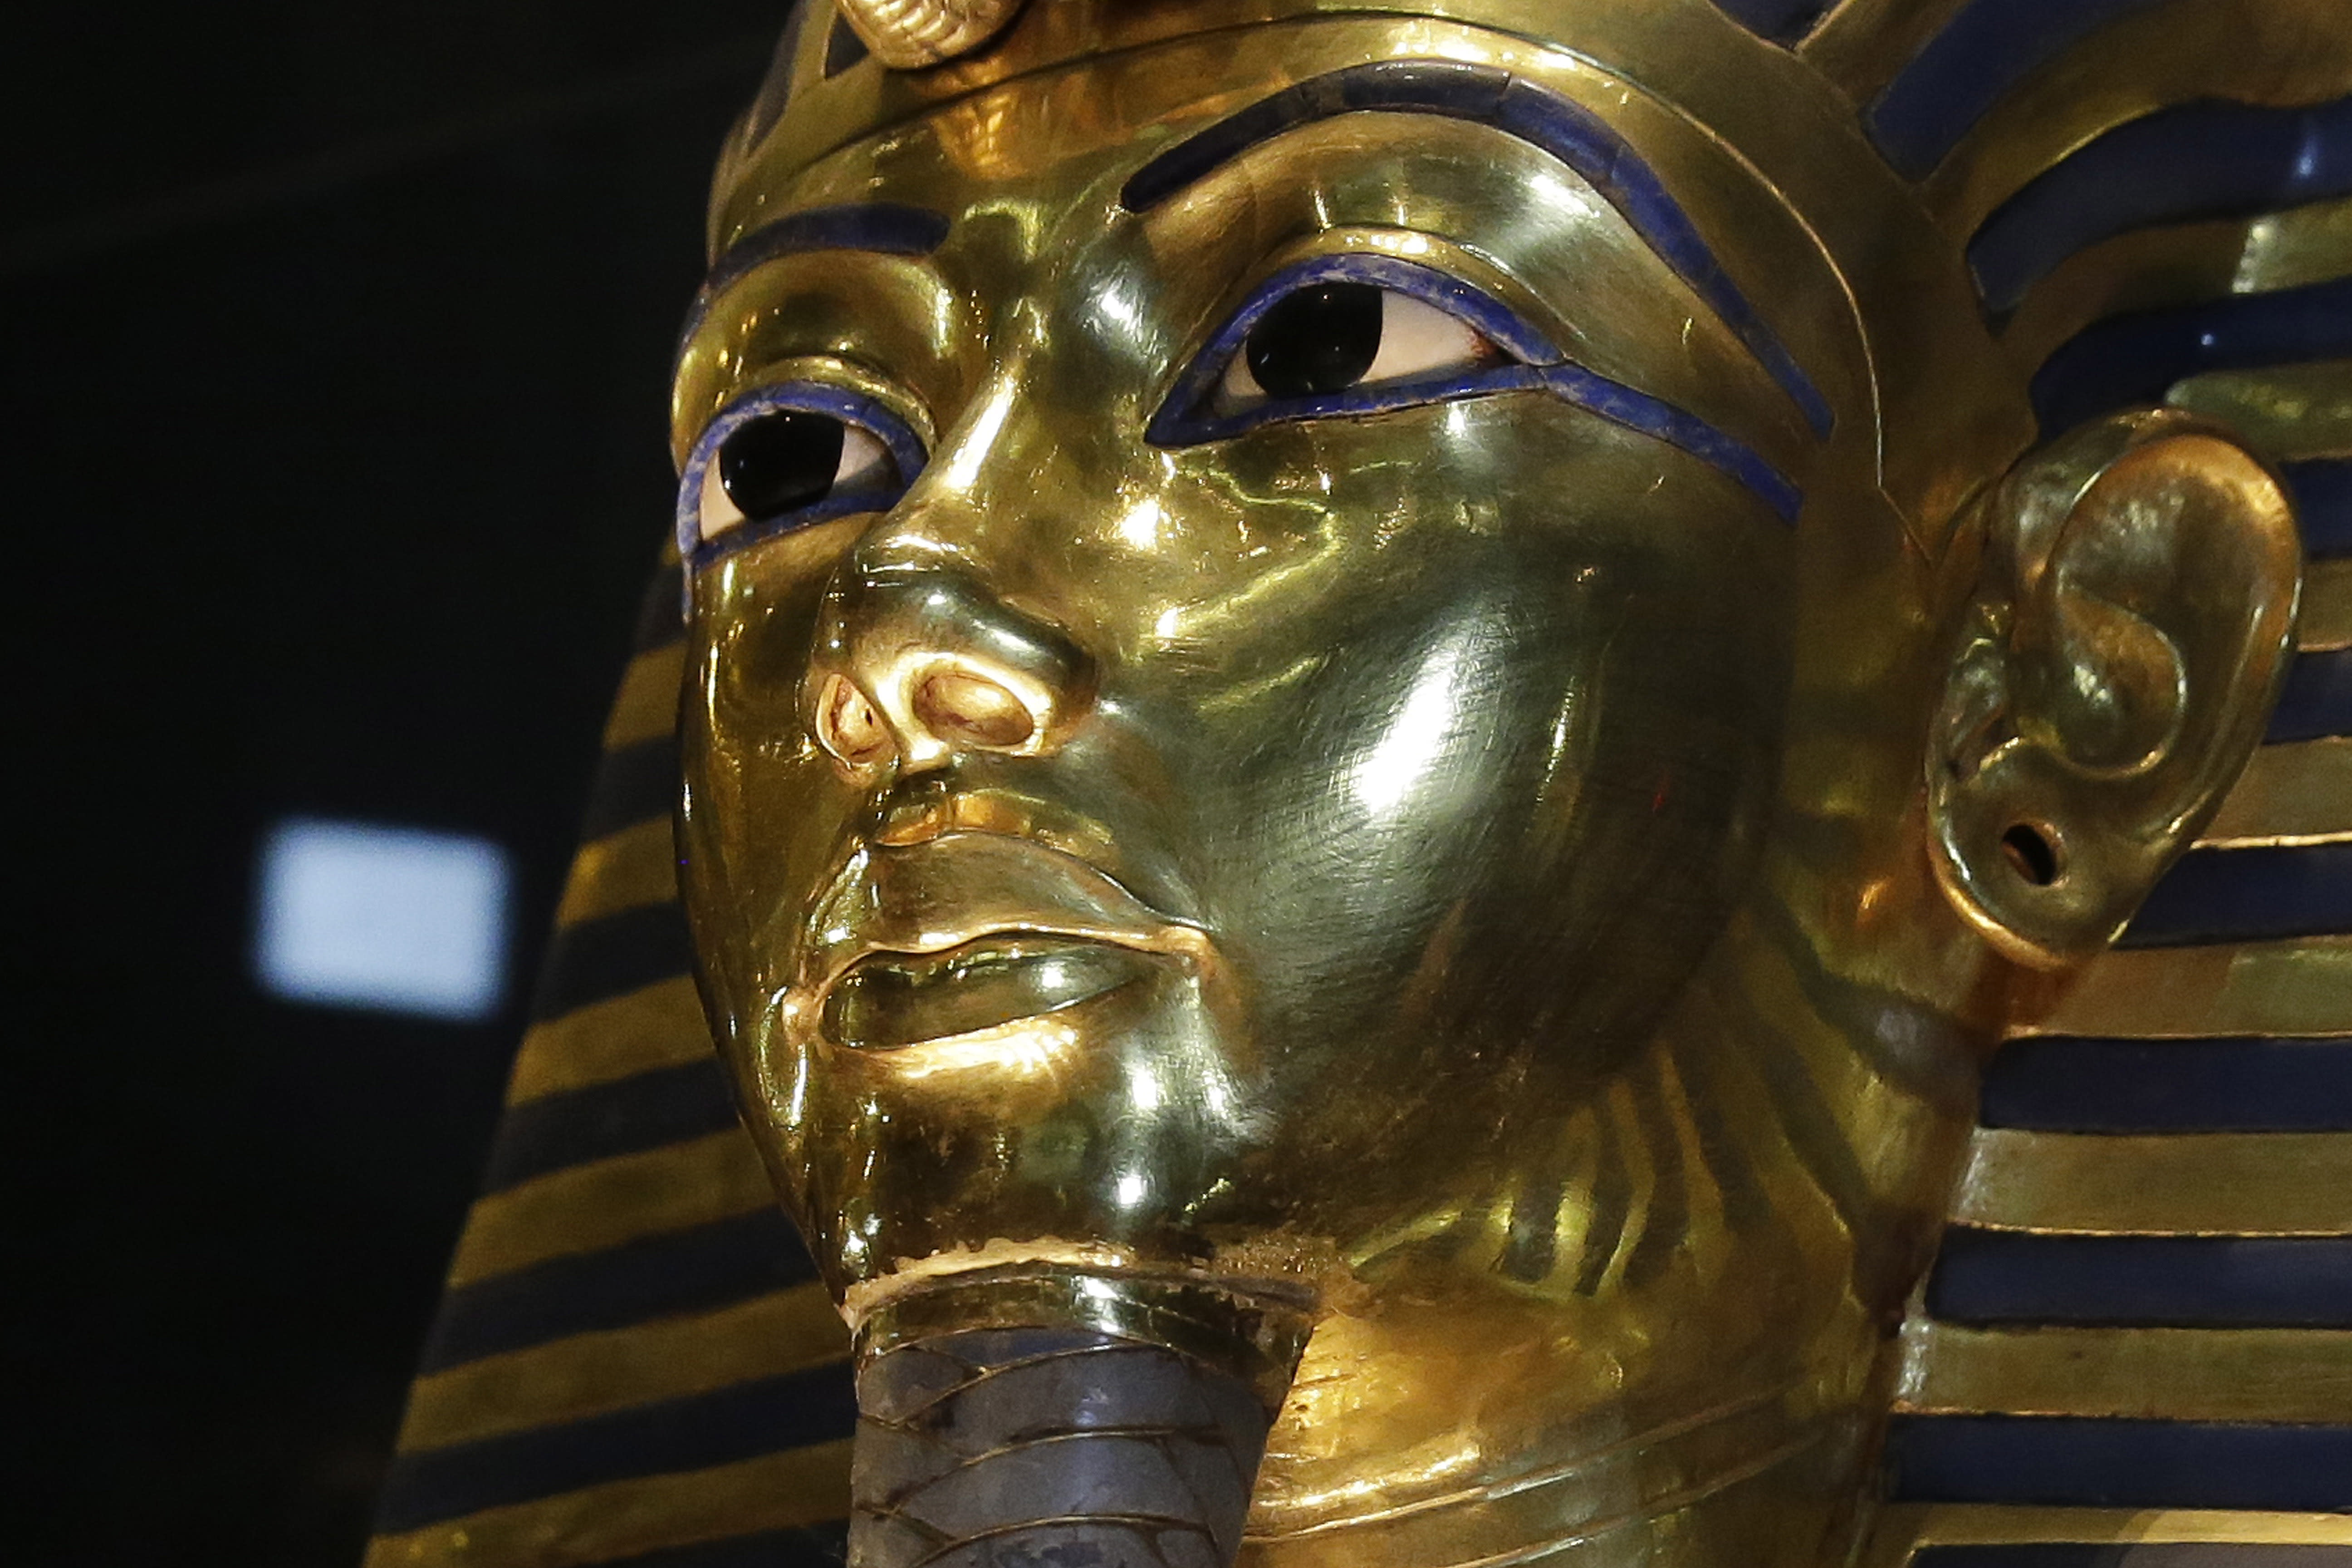 Egypt to restore King Tut mask after botched epoxy job